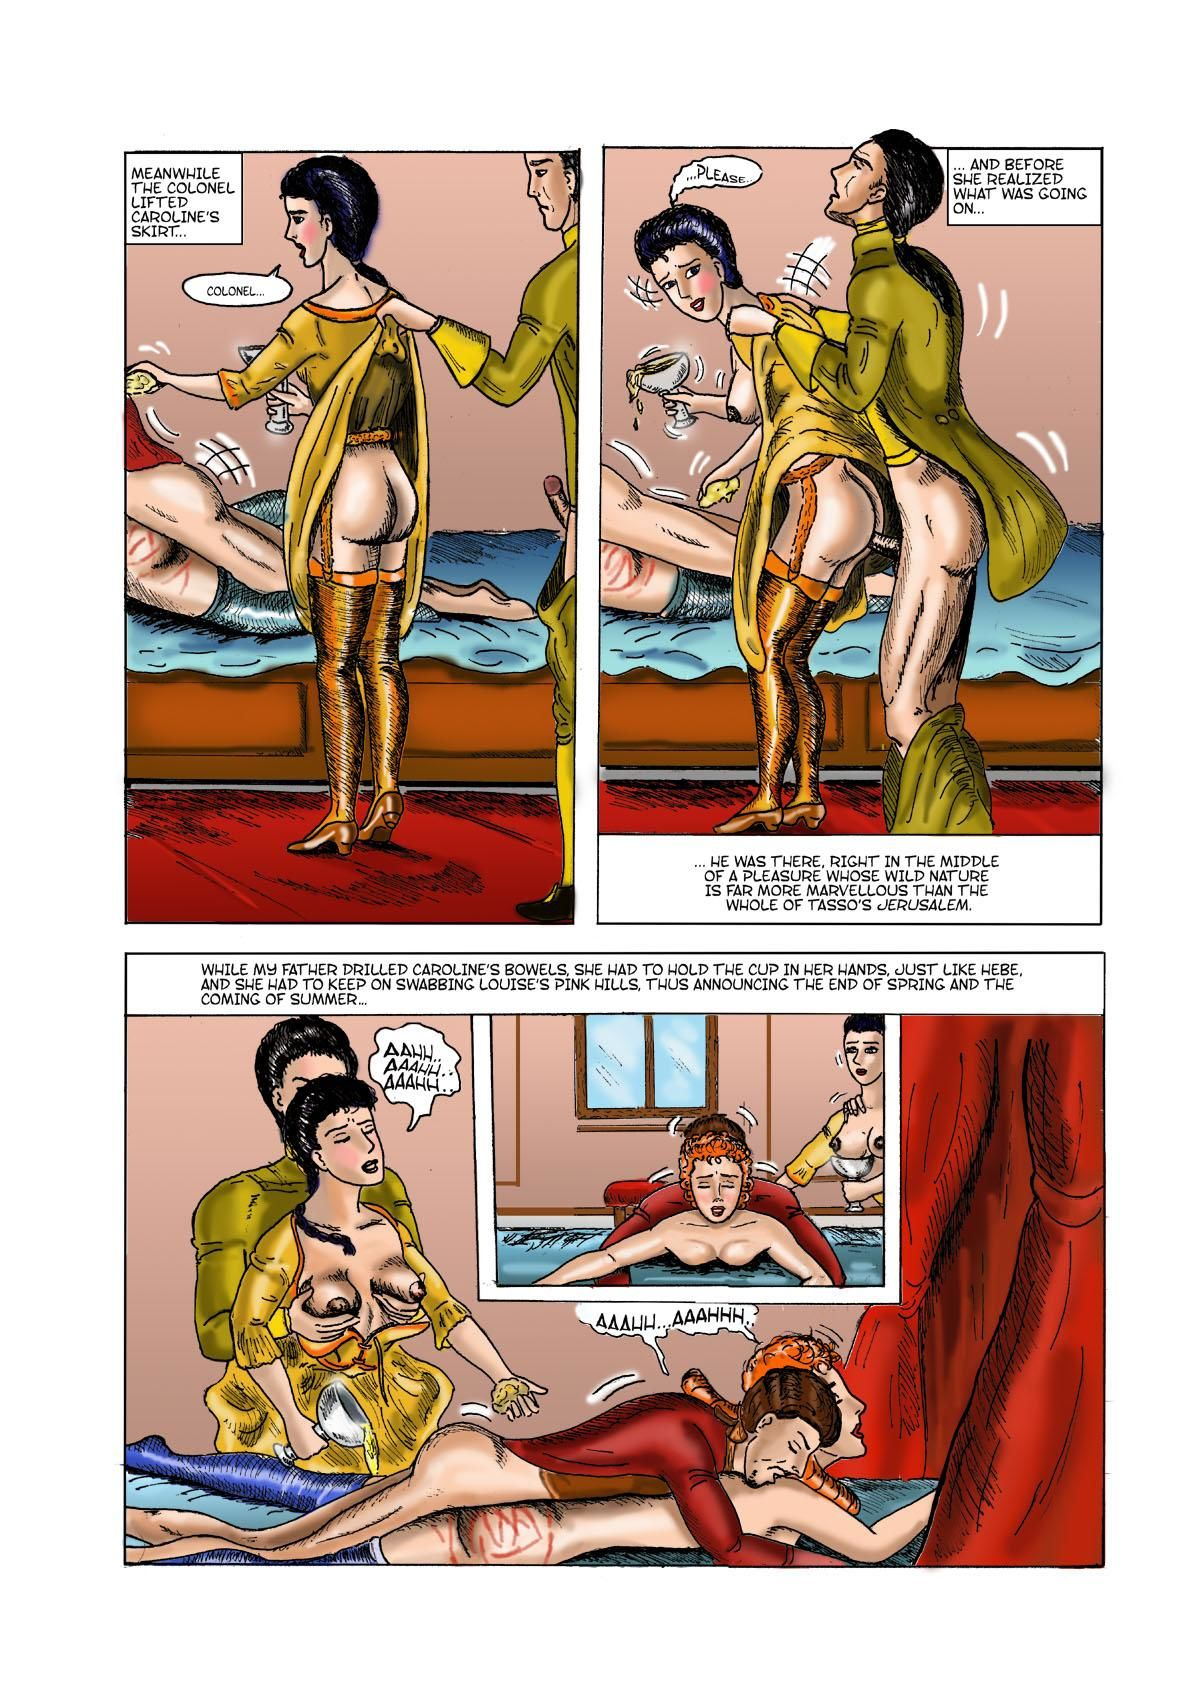 The History Of Erotic Art Is Ripe With Pleasure, And Paina Story In Images